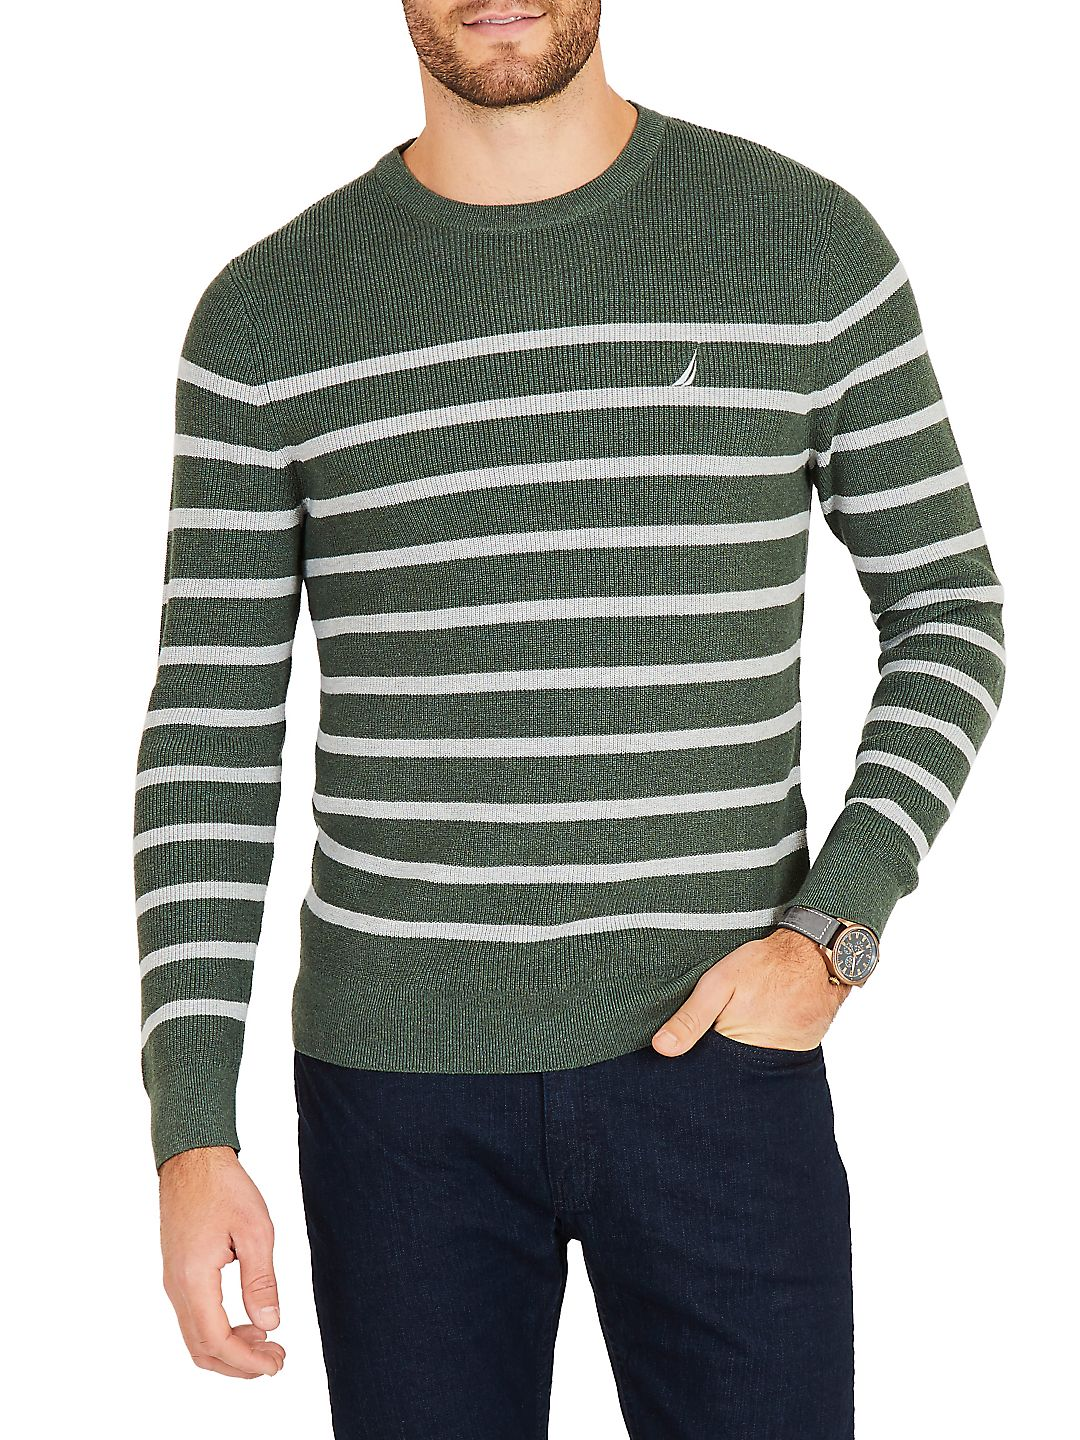 Breton Navtech Striped Crewneck Sweater